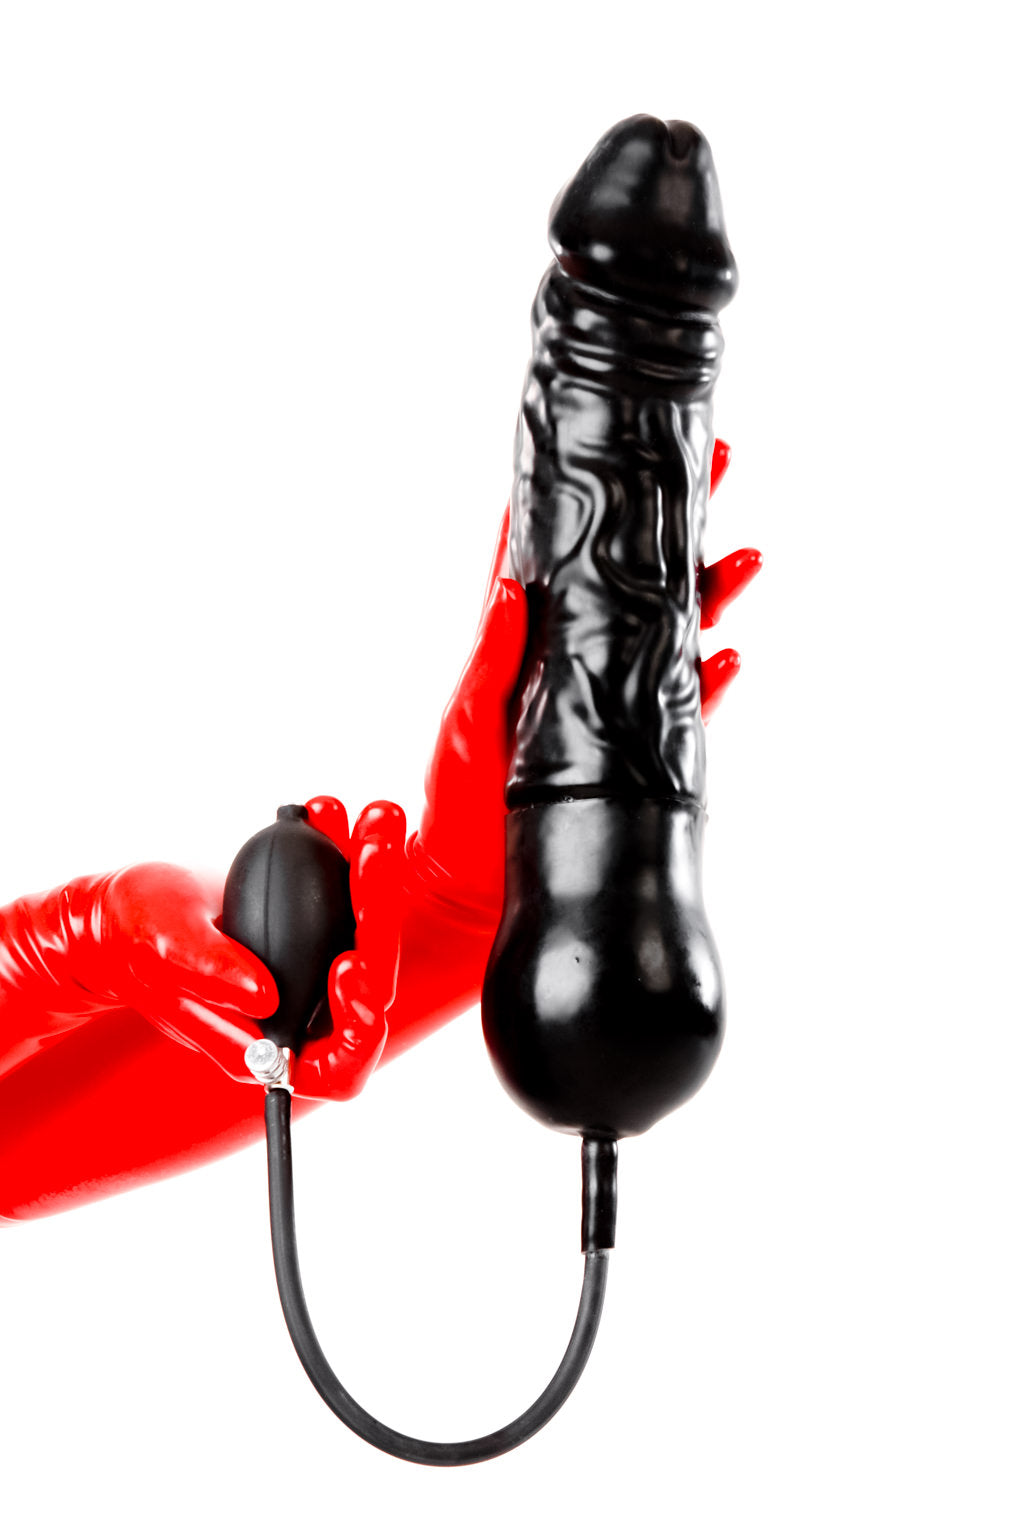 Red latex gloves holding an inflatable gargantuan dildo.